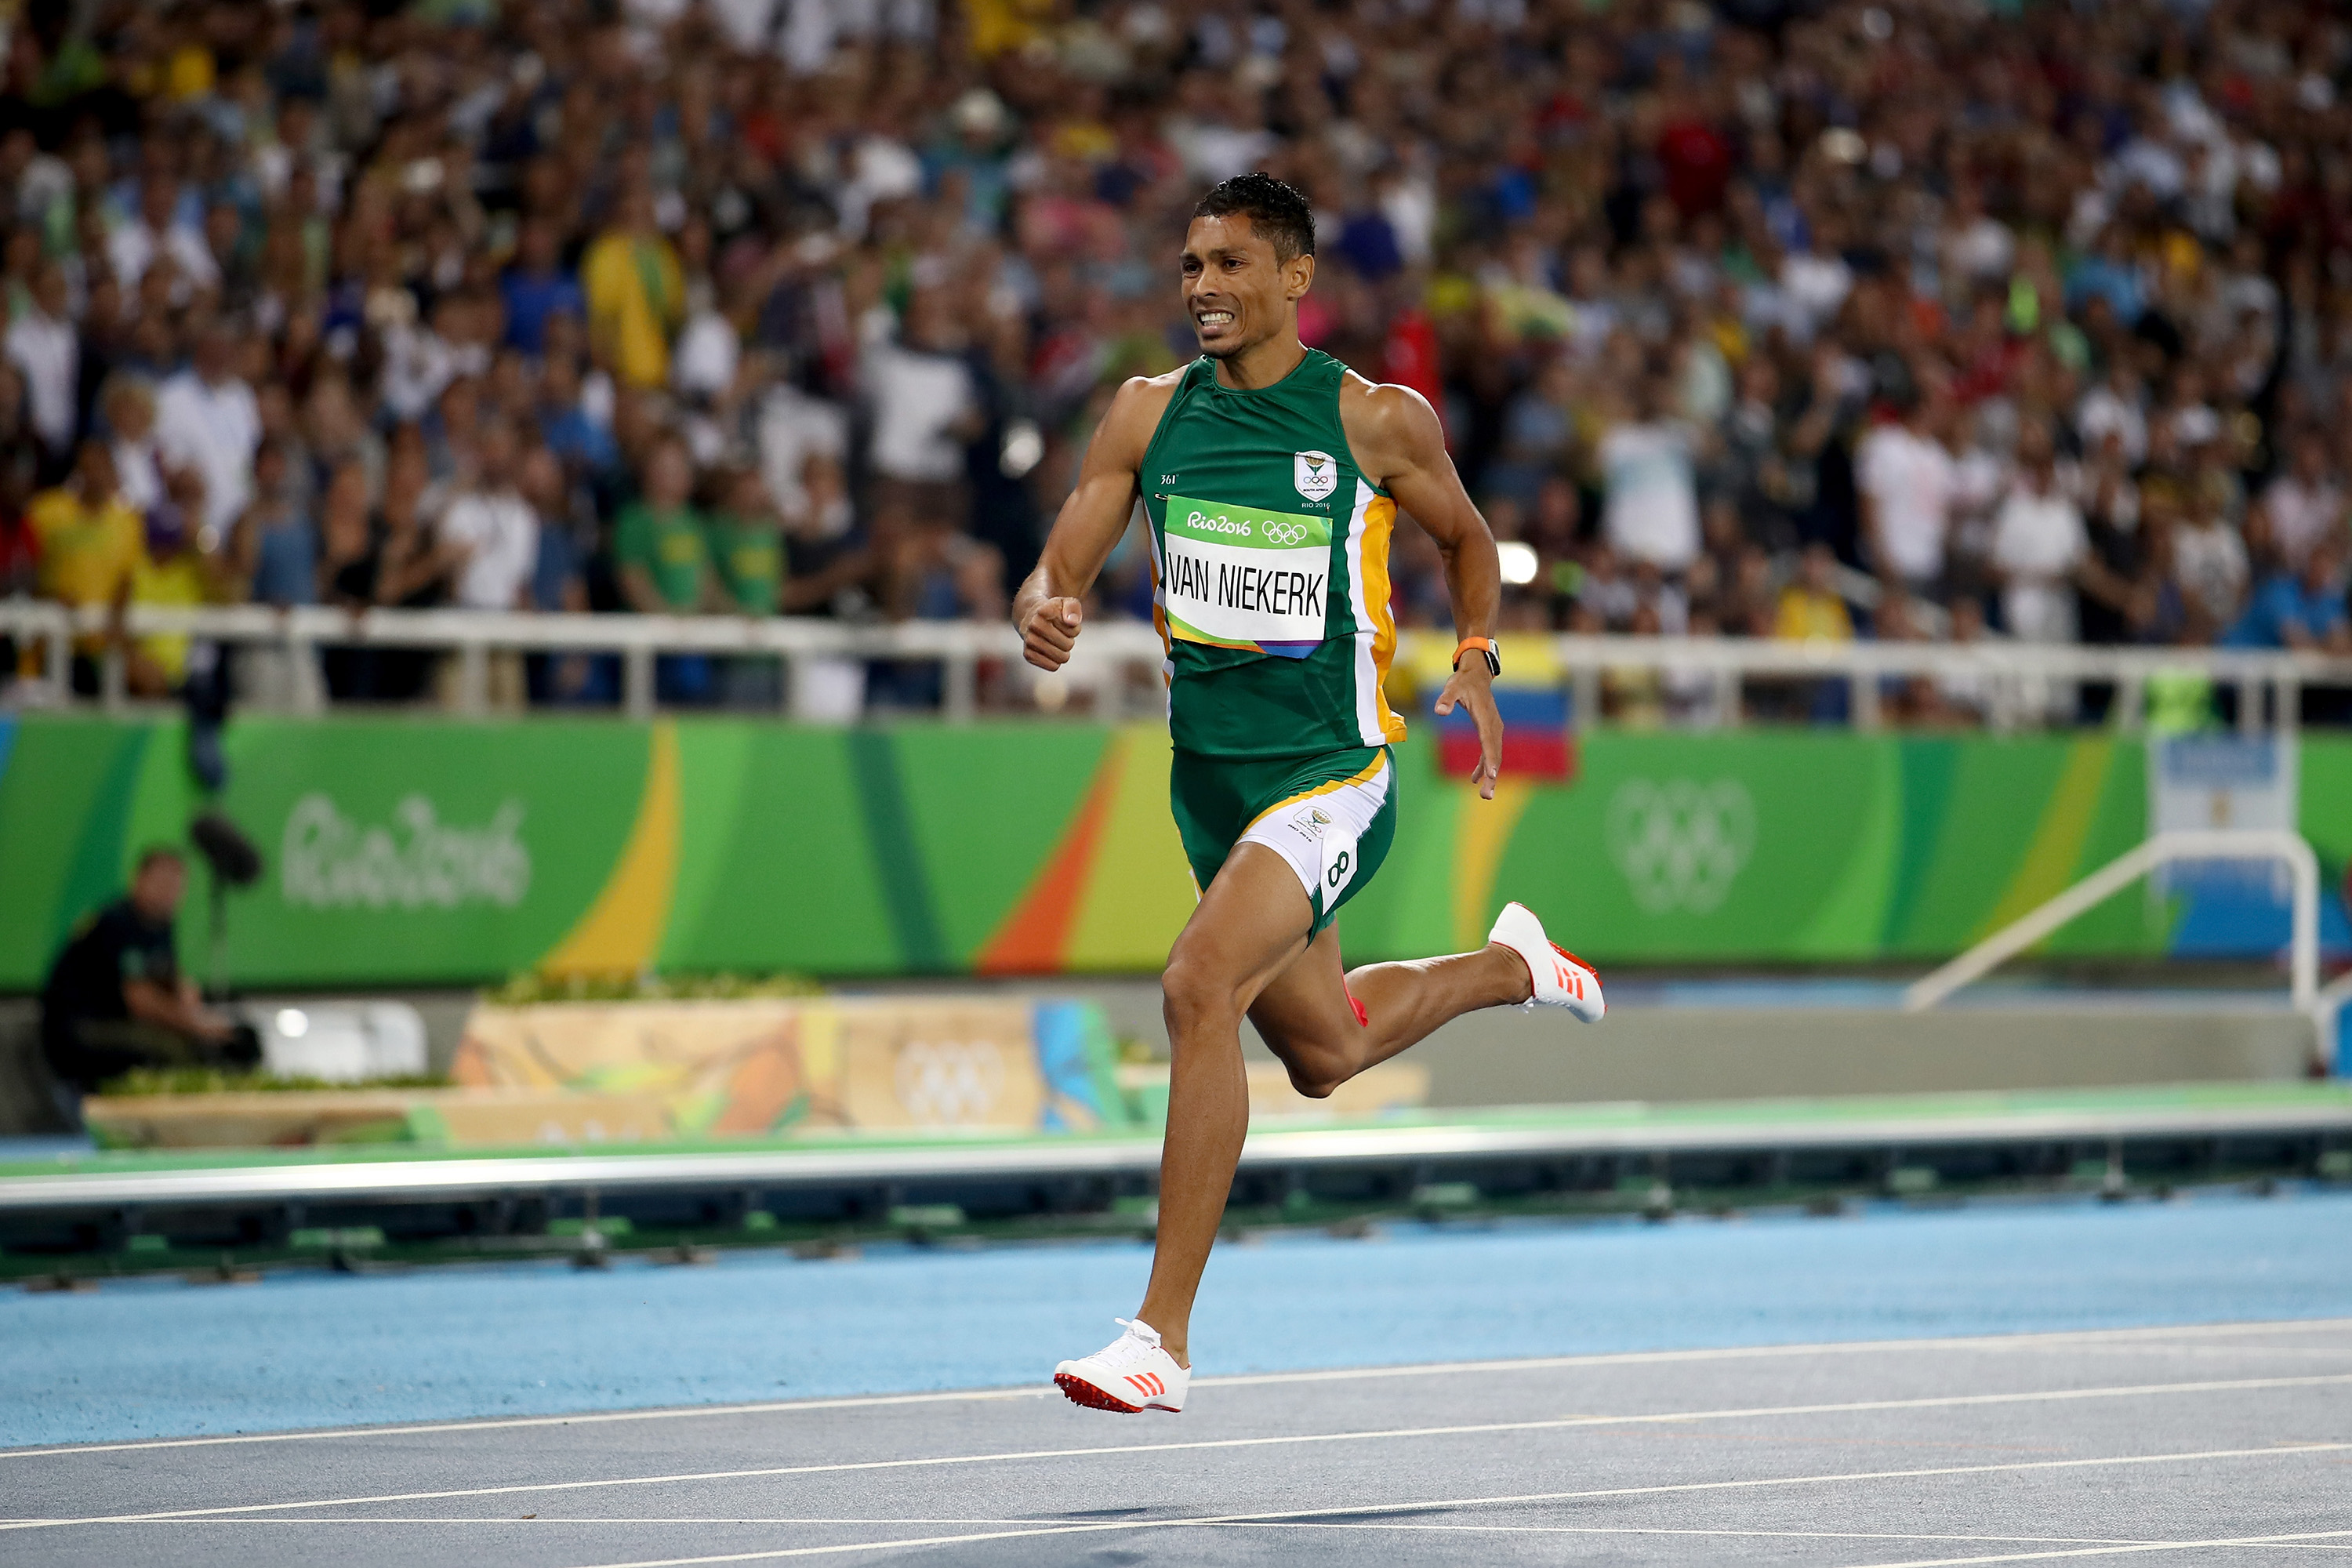 On Aug. 14, the world tuned into track and field at the Olympics to watch the 100 meter final and Usain Bolt vie for a third consecutive gold medal in the marquee event. Bolt made history, but the most impressive achievement of the night belonged to South Africa's Wayde Van Niekerk, who won the 400-meter final from lane eight in a world record of 43.03. The time shattered Michael Johnson's 43.18 world record set 17 years ago. Van Niekerk finished the year unbeaten in all of his 11 races at 100 meters, 200 meters and 400 meters. At just 24 years old, he is one of the stars in a sport that will soon be without Usain Bolt.